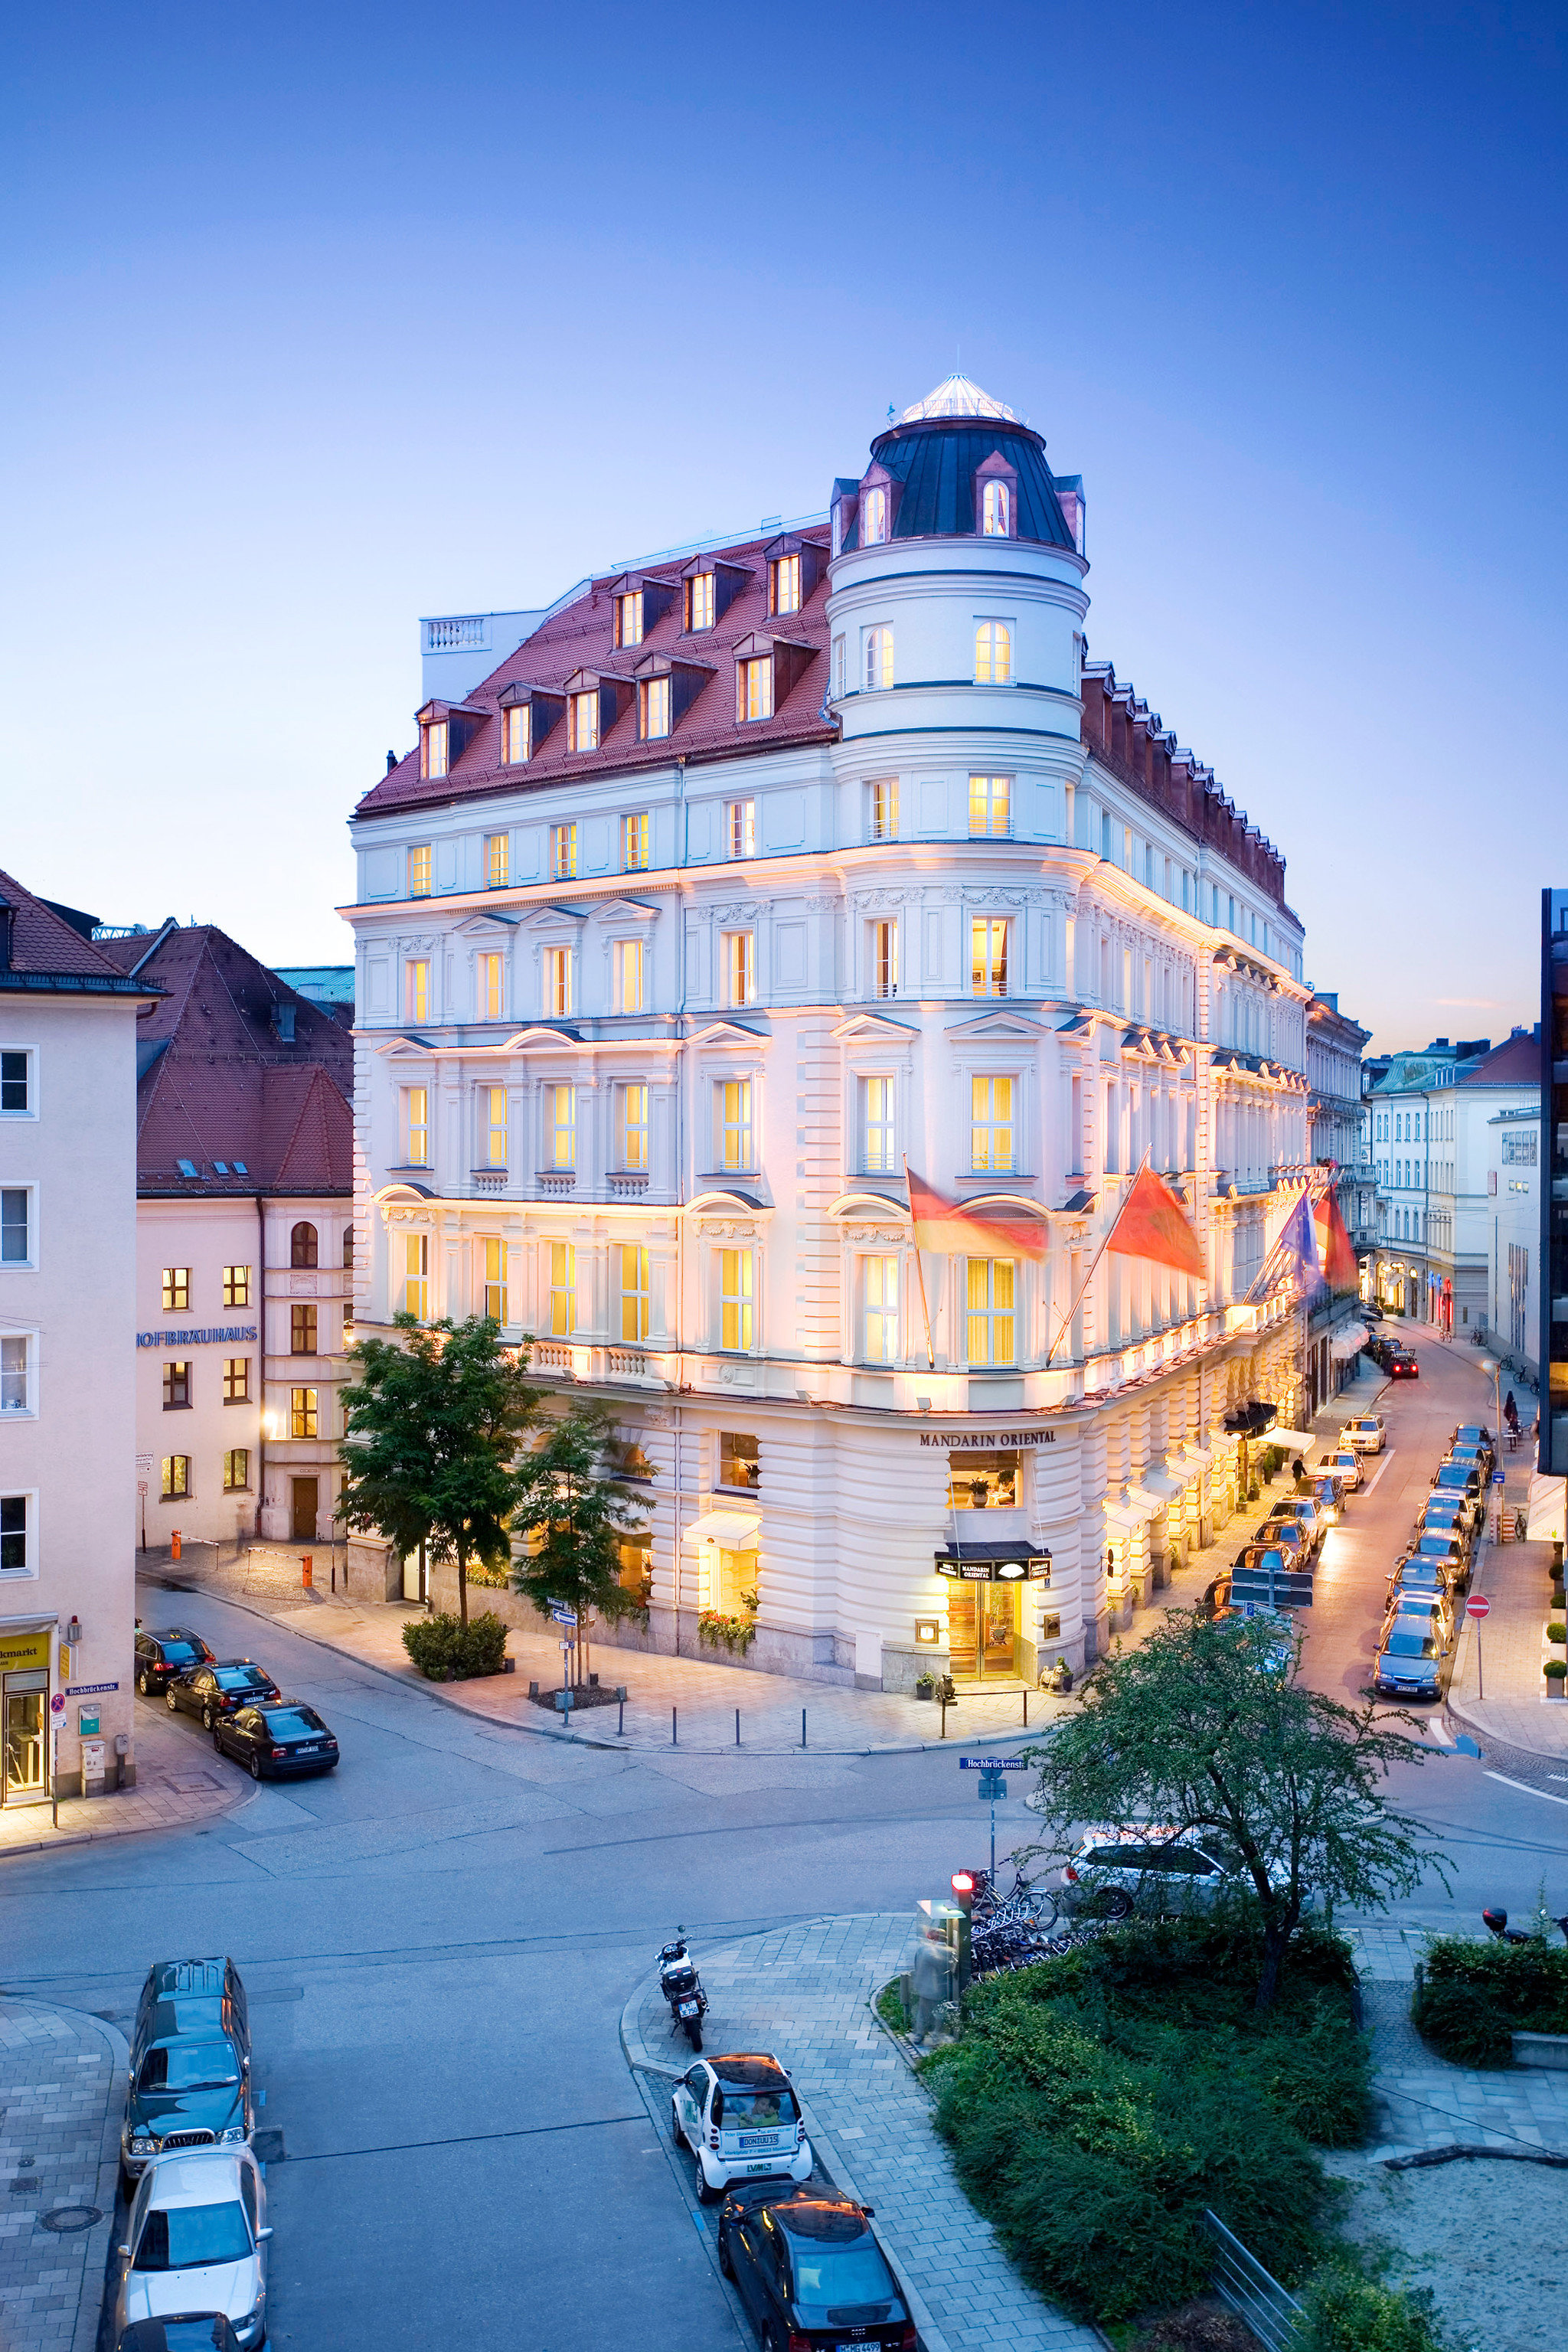 Architecture Buildings City europe Exterior Germany Hotels Luxury Munich outdoor landmark Town urban area cityscape neighbourhood human settlement vacation condominium residential area tourism tower block Downtown facade reflection Resort